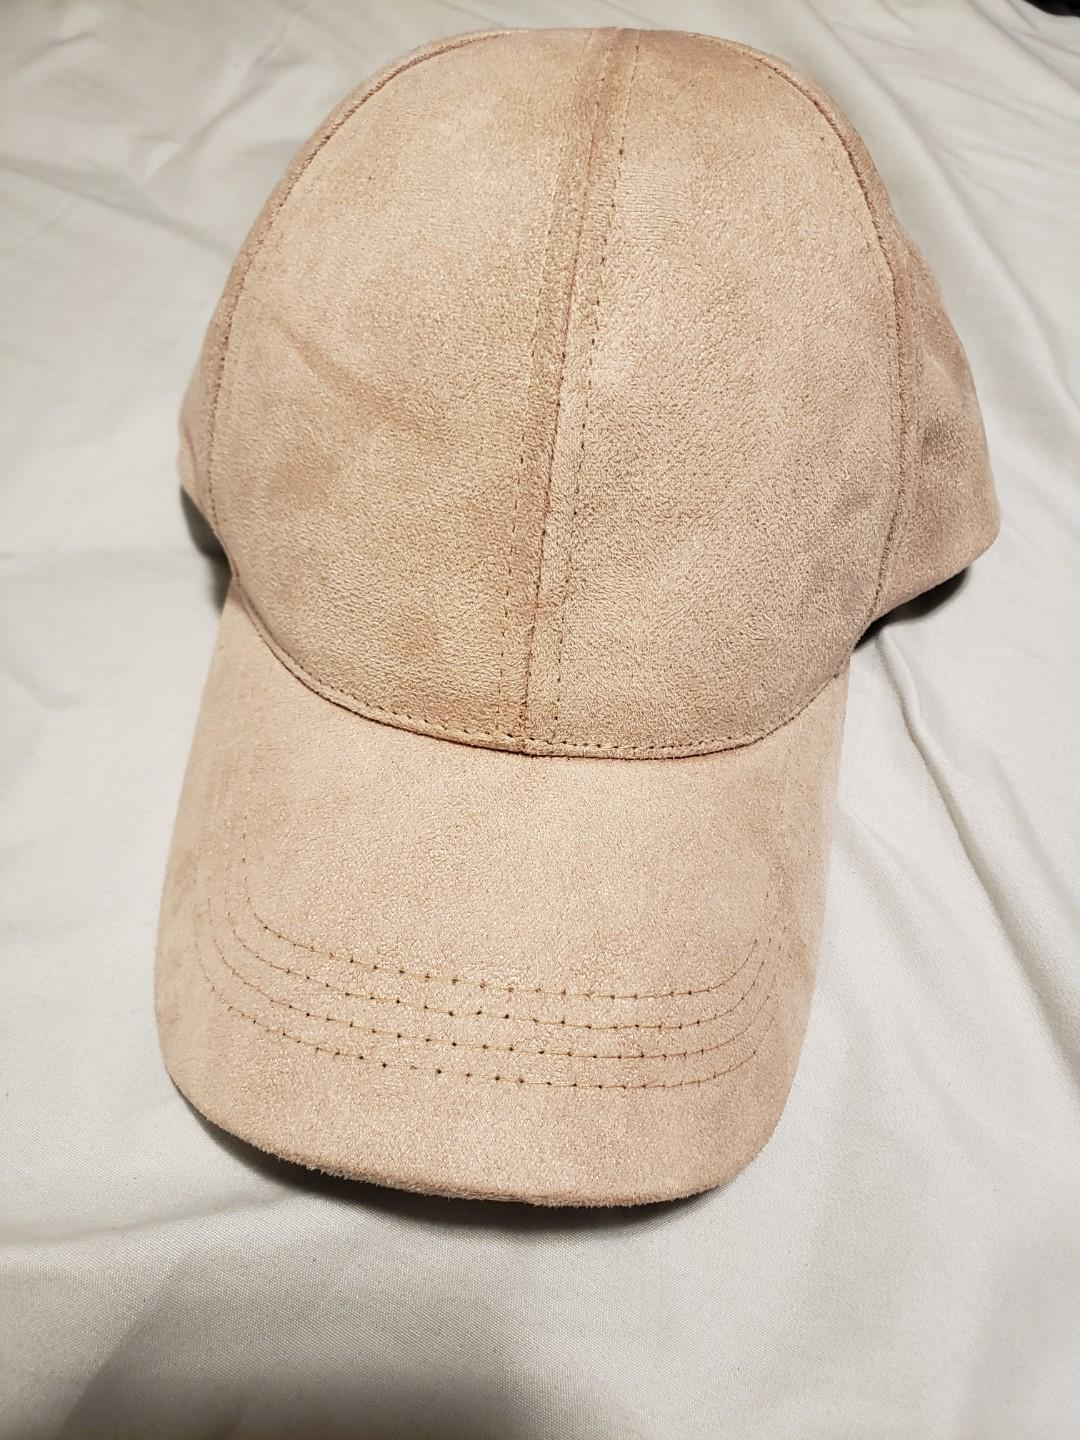 Pale pink suede baseball cap - barely worn, adjustable size